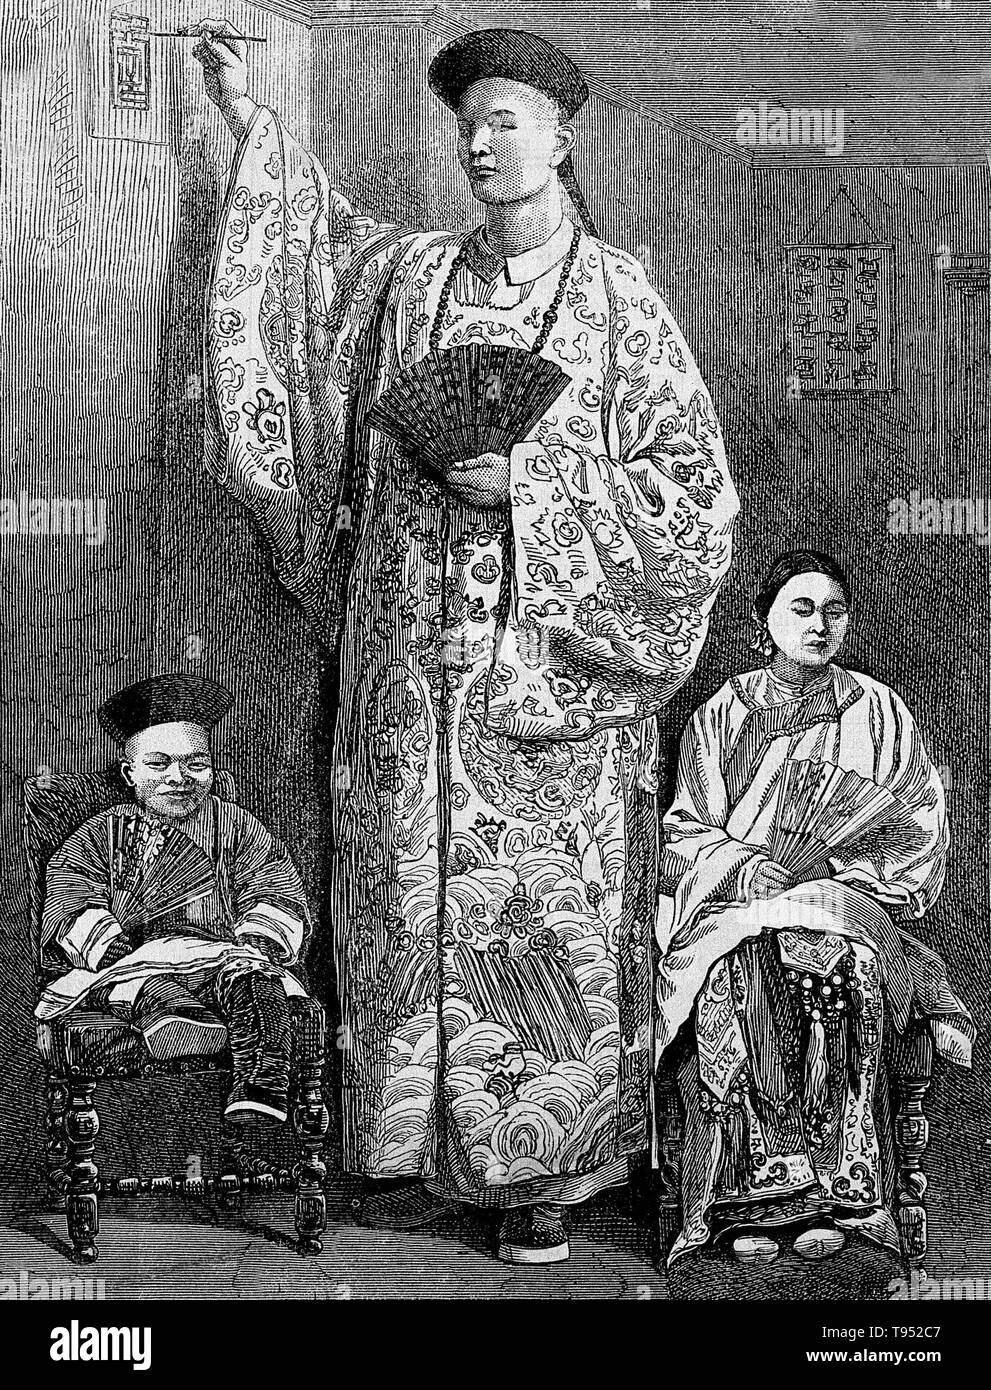 Chang Yu-sing the Chinese giant, with his wife, King-Foo and Chung Mow, a dwarf. Zhan Shichai AKA Chang Woo Gow (1841/47 - November 5, 1893) was a Chinese giant. His height was claimed to be over 8 feet, but there are no authoritative records. He left China in 1865 to travel to London where he appeared on stage, later travelling around Europe, and to the US and Australia as 'Chang the Chinese Giant'. Zhan received a good education in various countries, and developed a good understanding of ten languages. In America, he earned a salary of $500 a month. Kin Foo, the Chinese wife who accompanied  - Stock Image